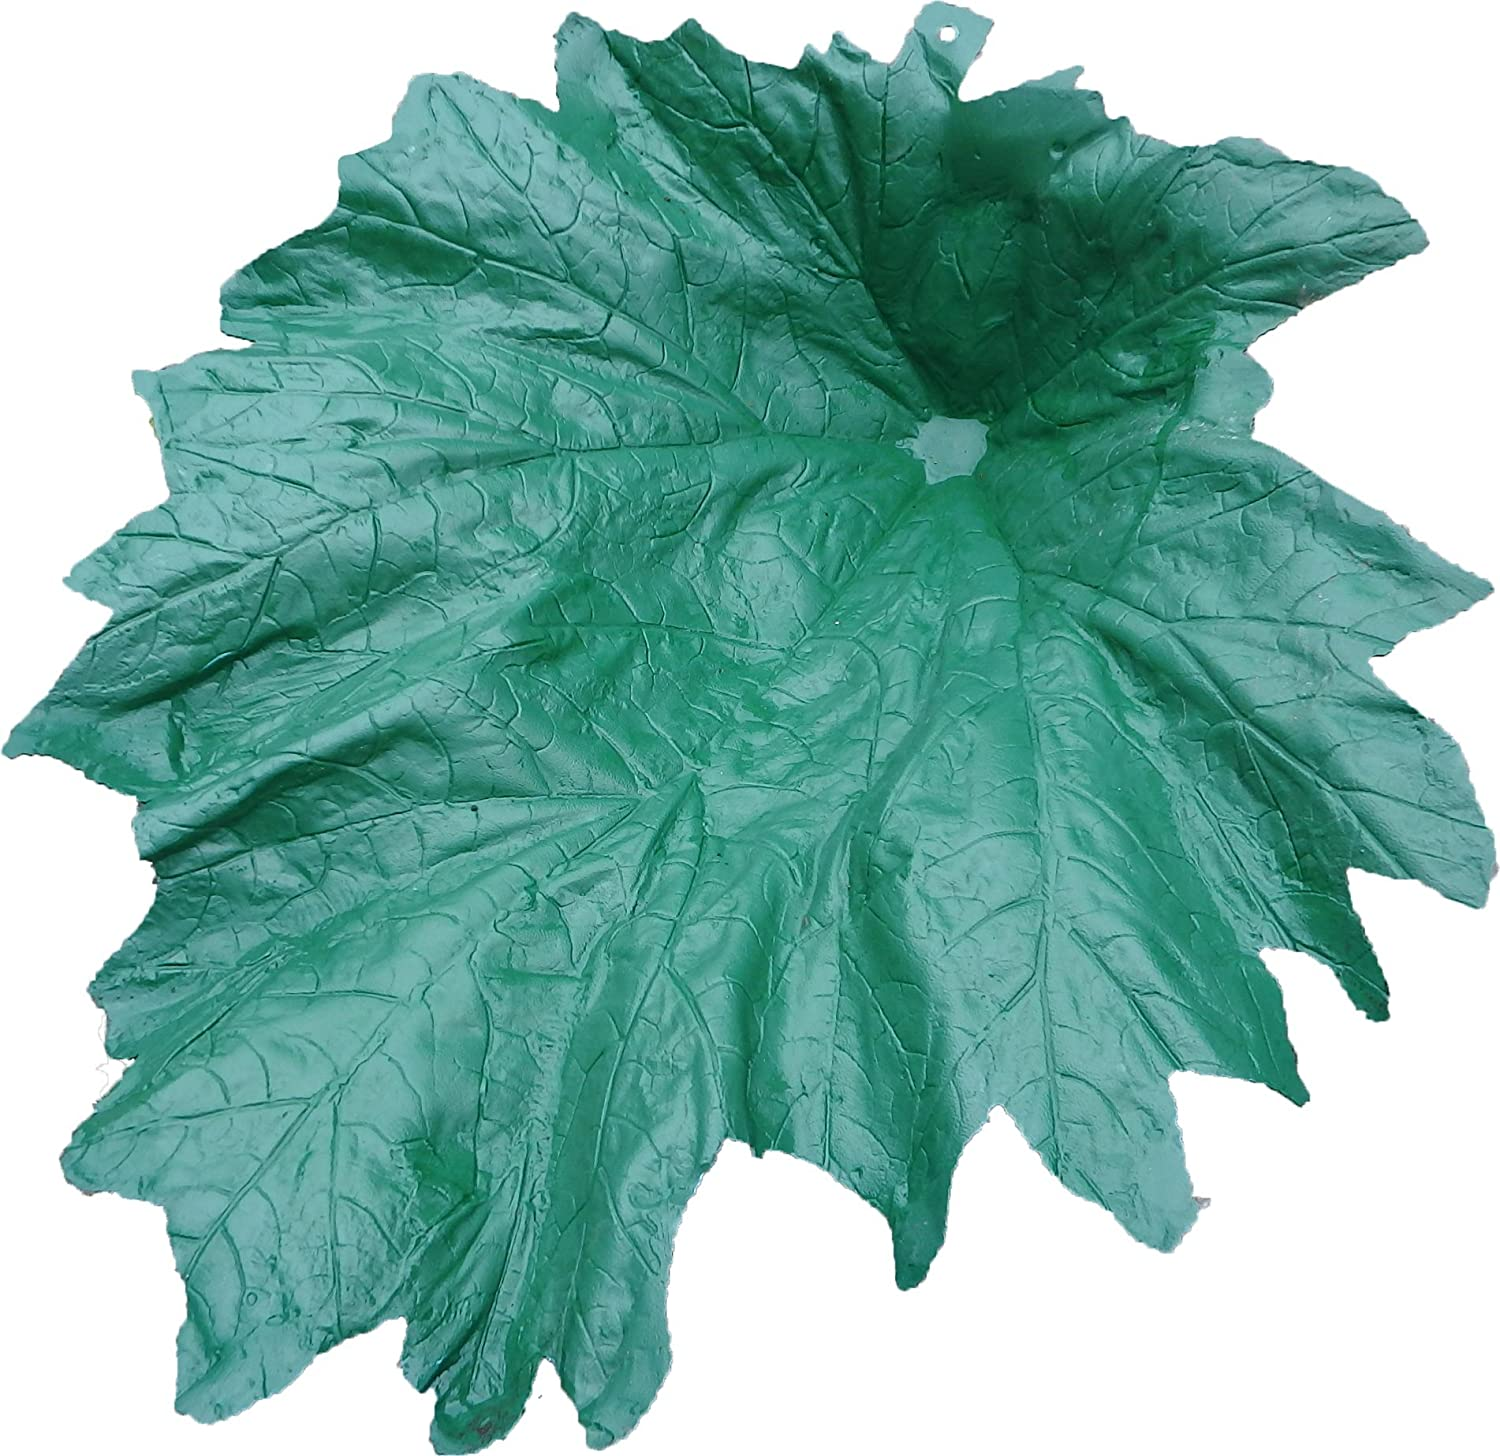 Small Plastic Moulded Gunnera Leaf Garden Feature Perfect For